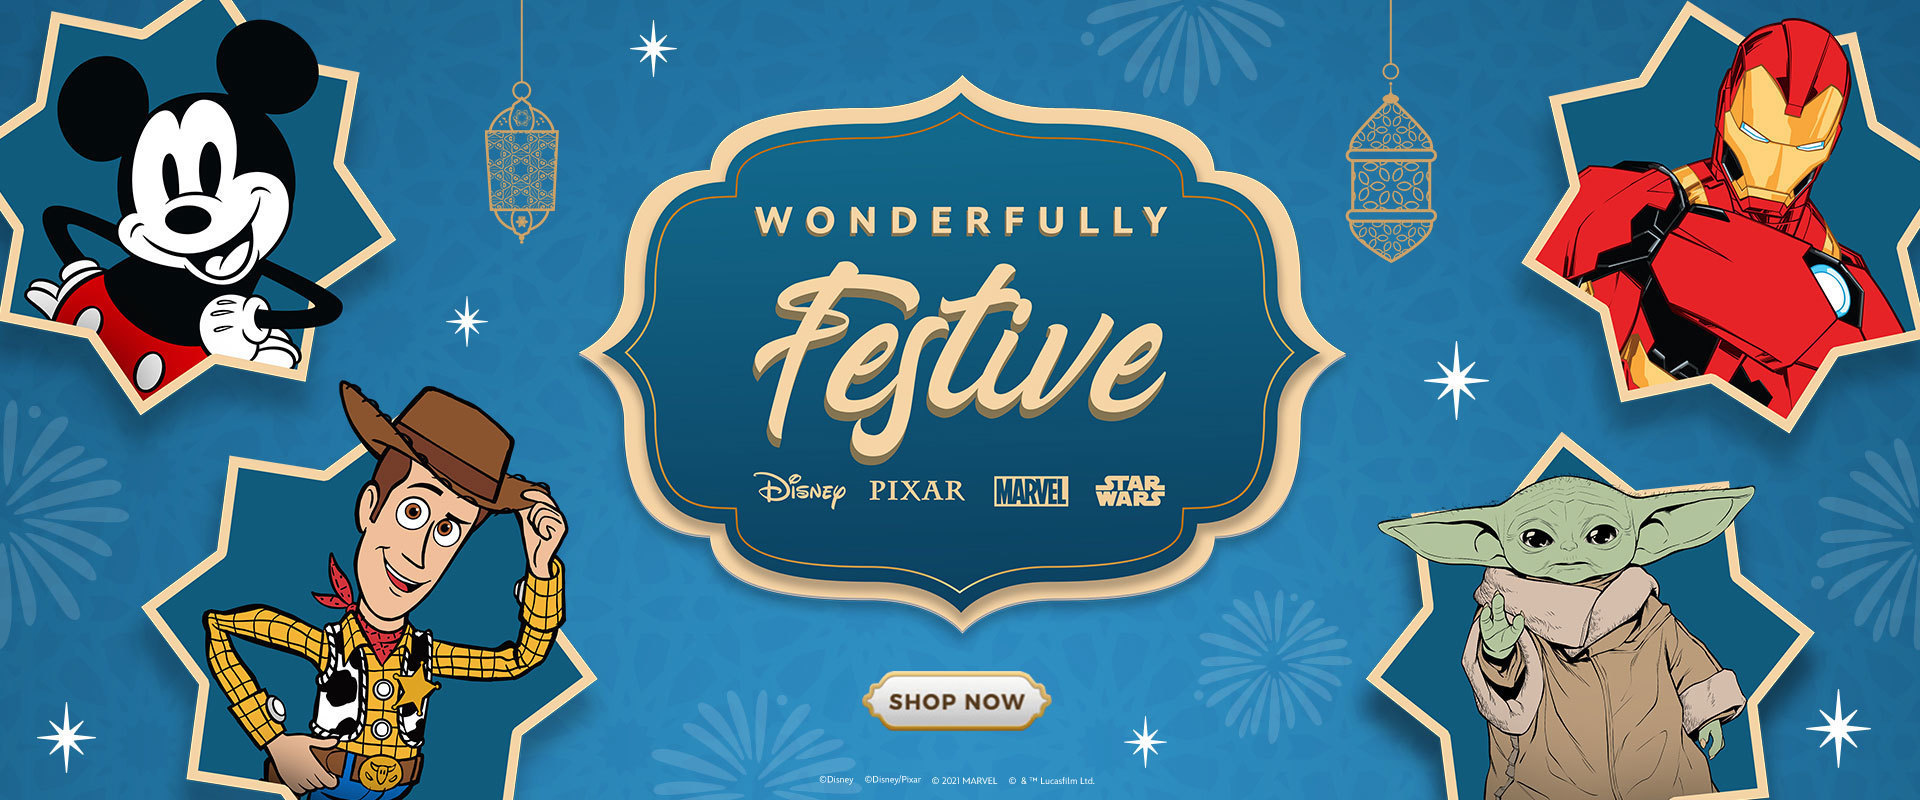 Disney's Wonderfully Festive Hari Raya Promotions